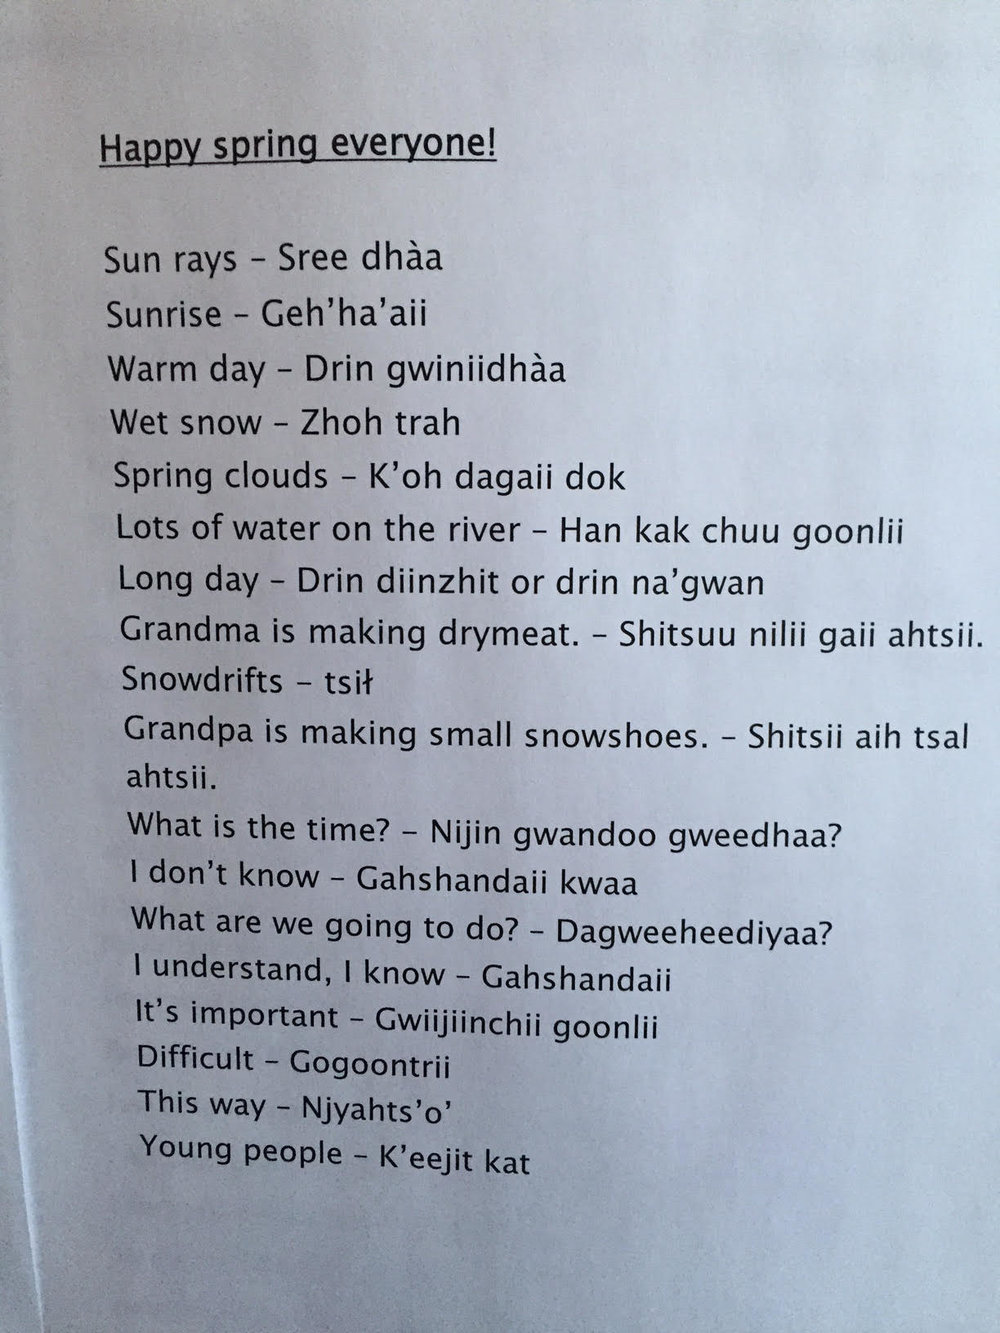 More Gwich'in language!